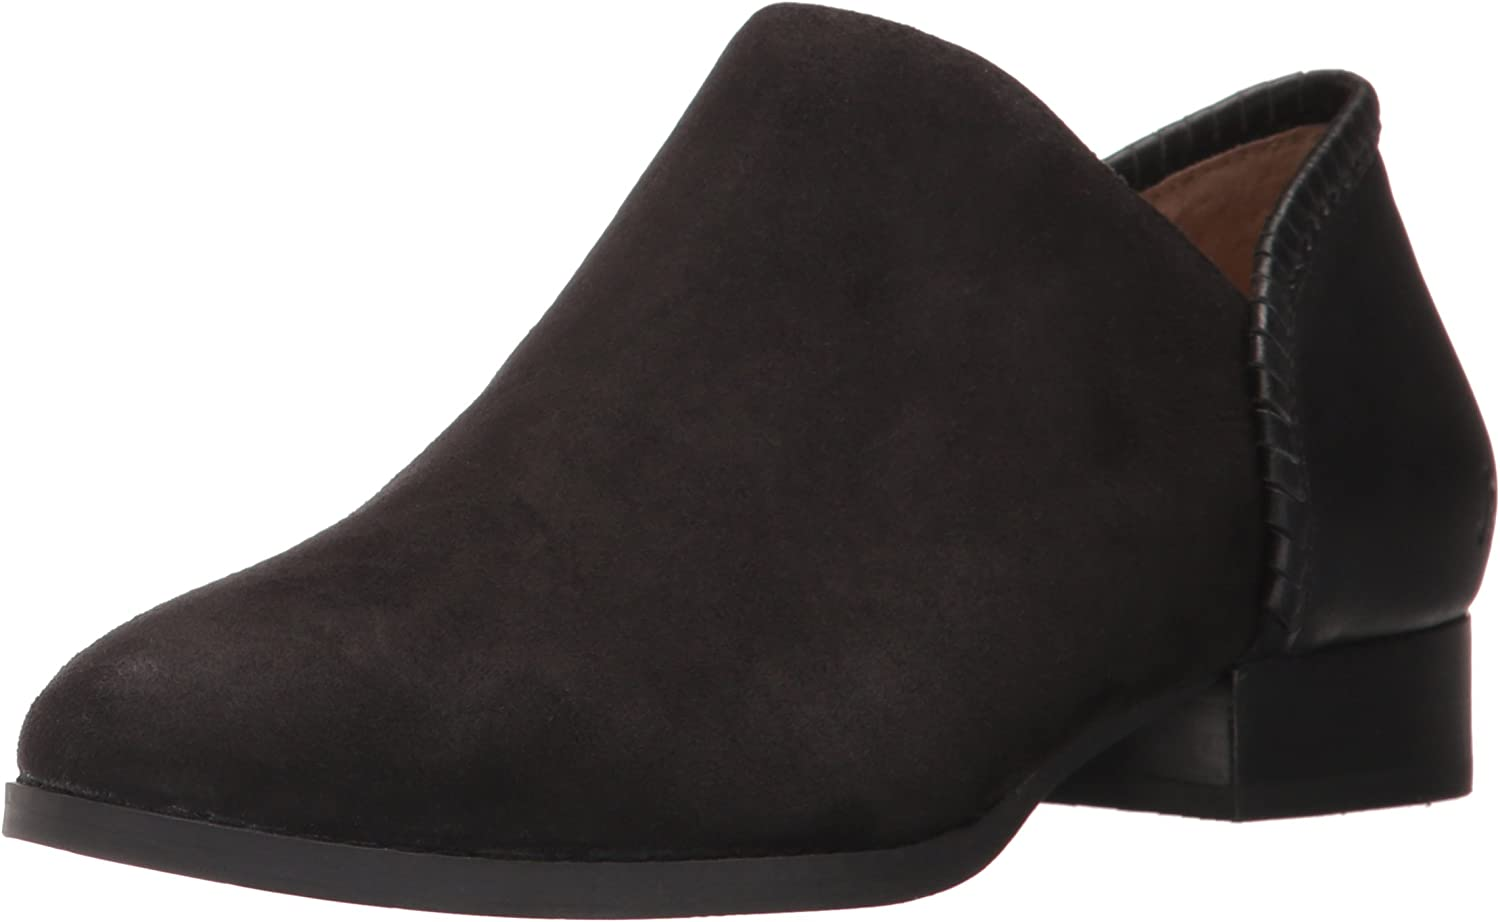 Jack Max 40% OFF Rogers Women's cheap Avery Blocked Bootie Ankle